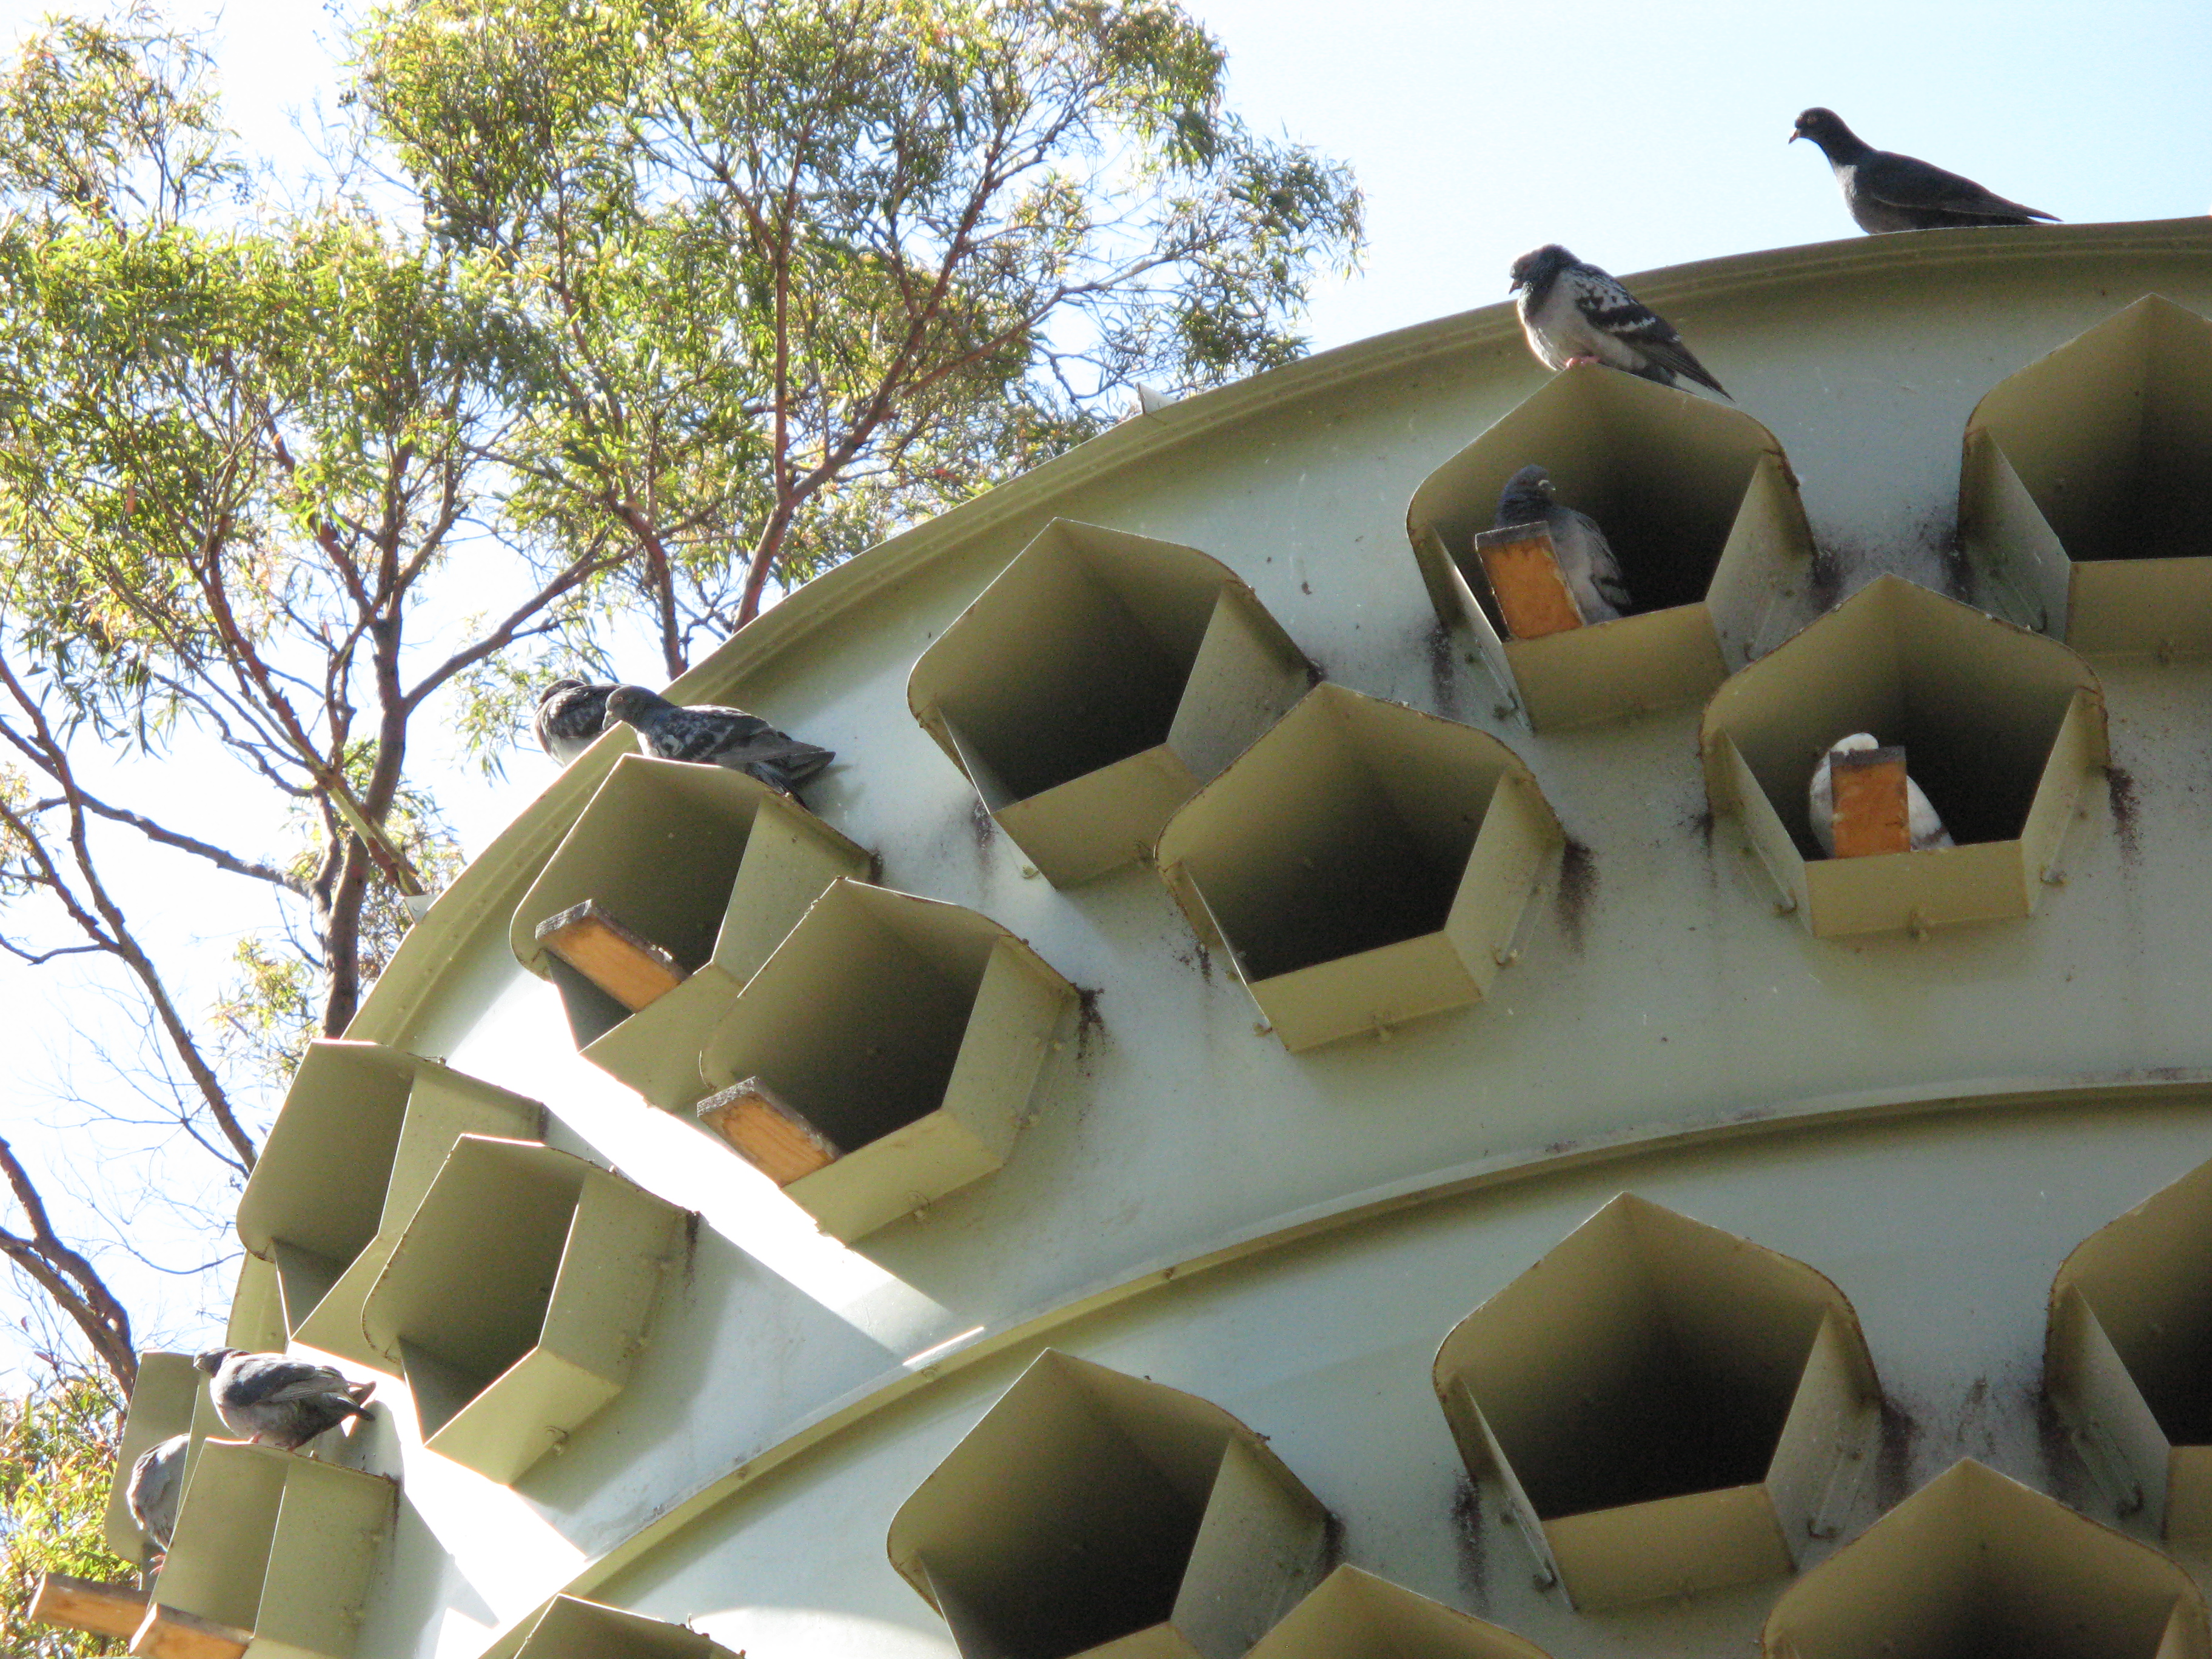 Pigeon house plans and photos - Pigeon House Plans Free